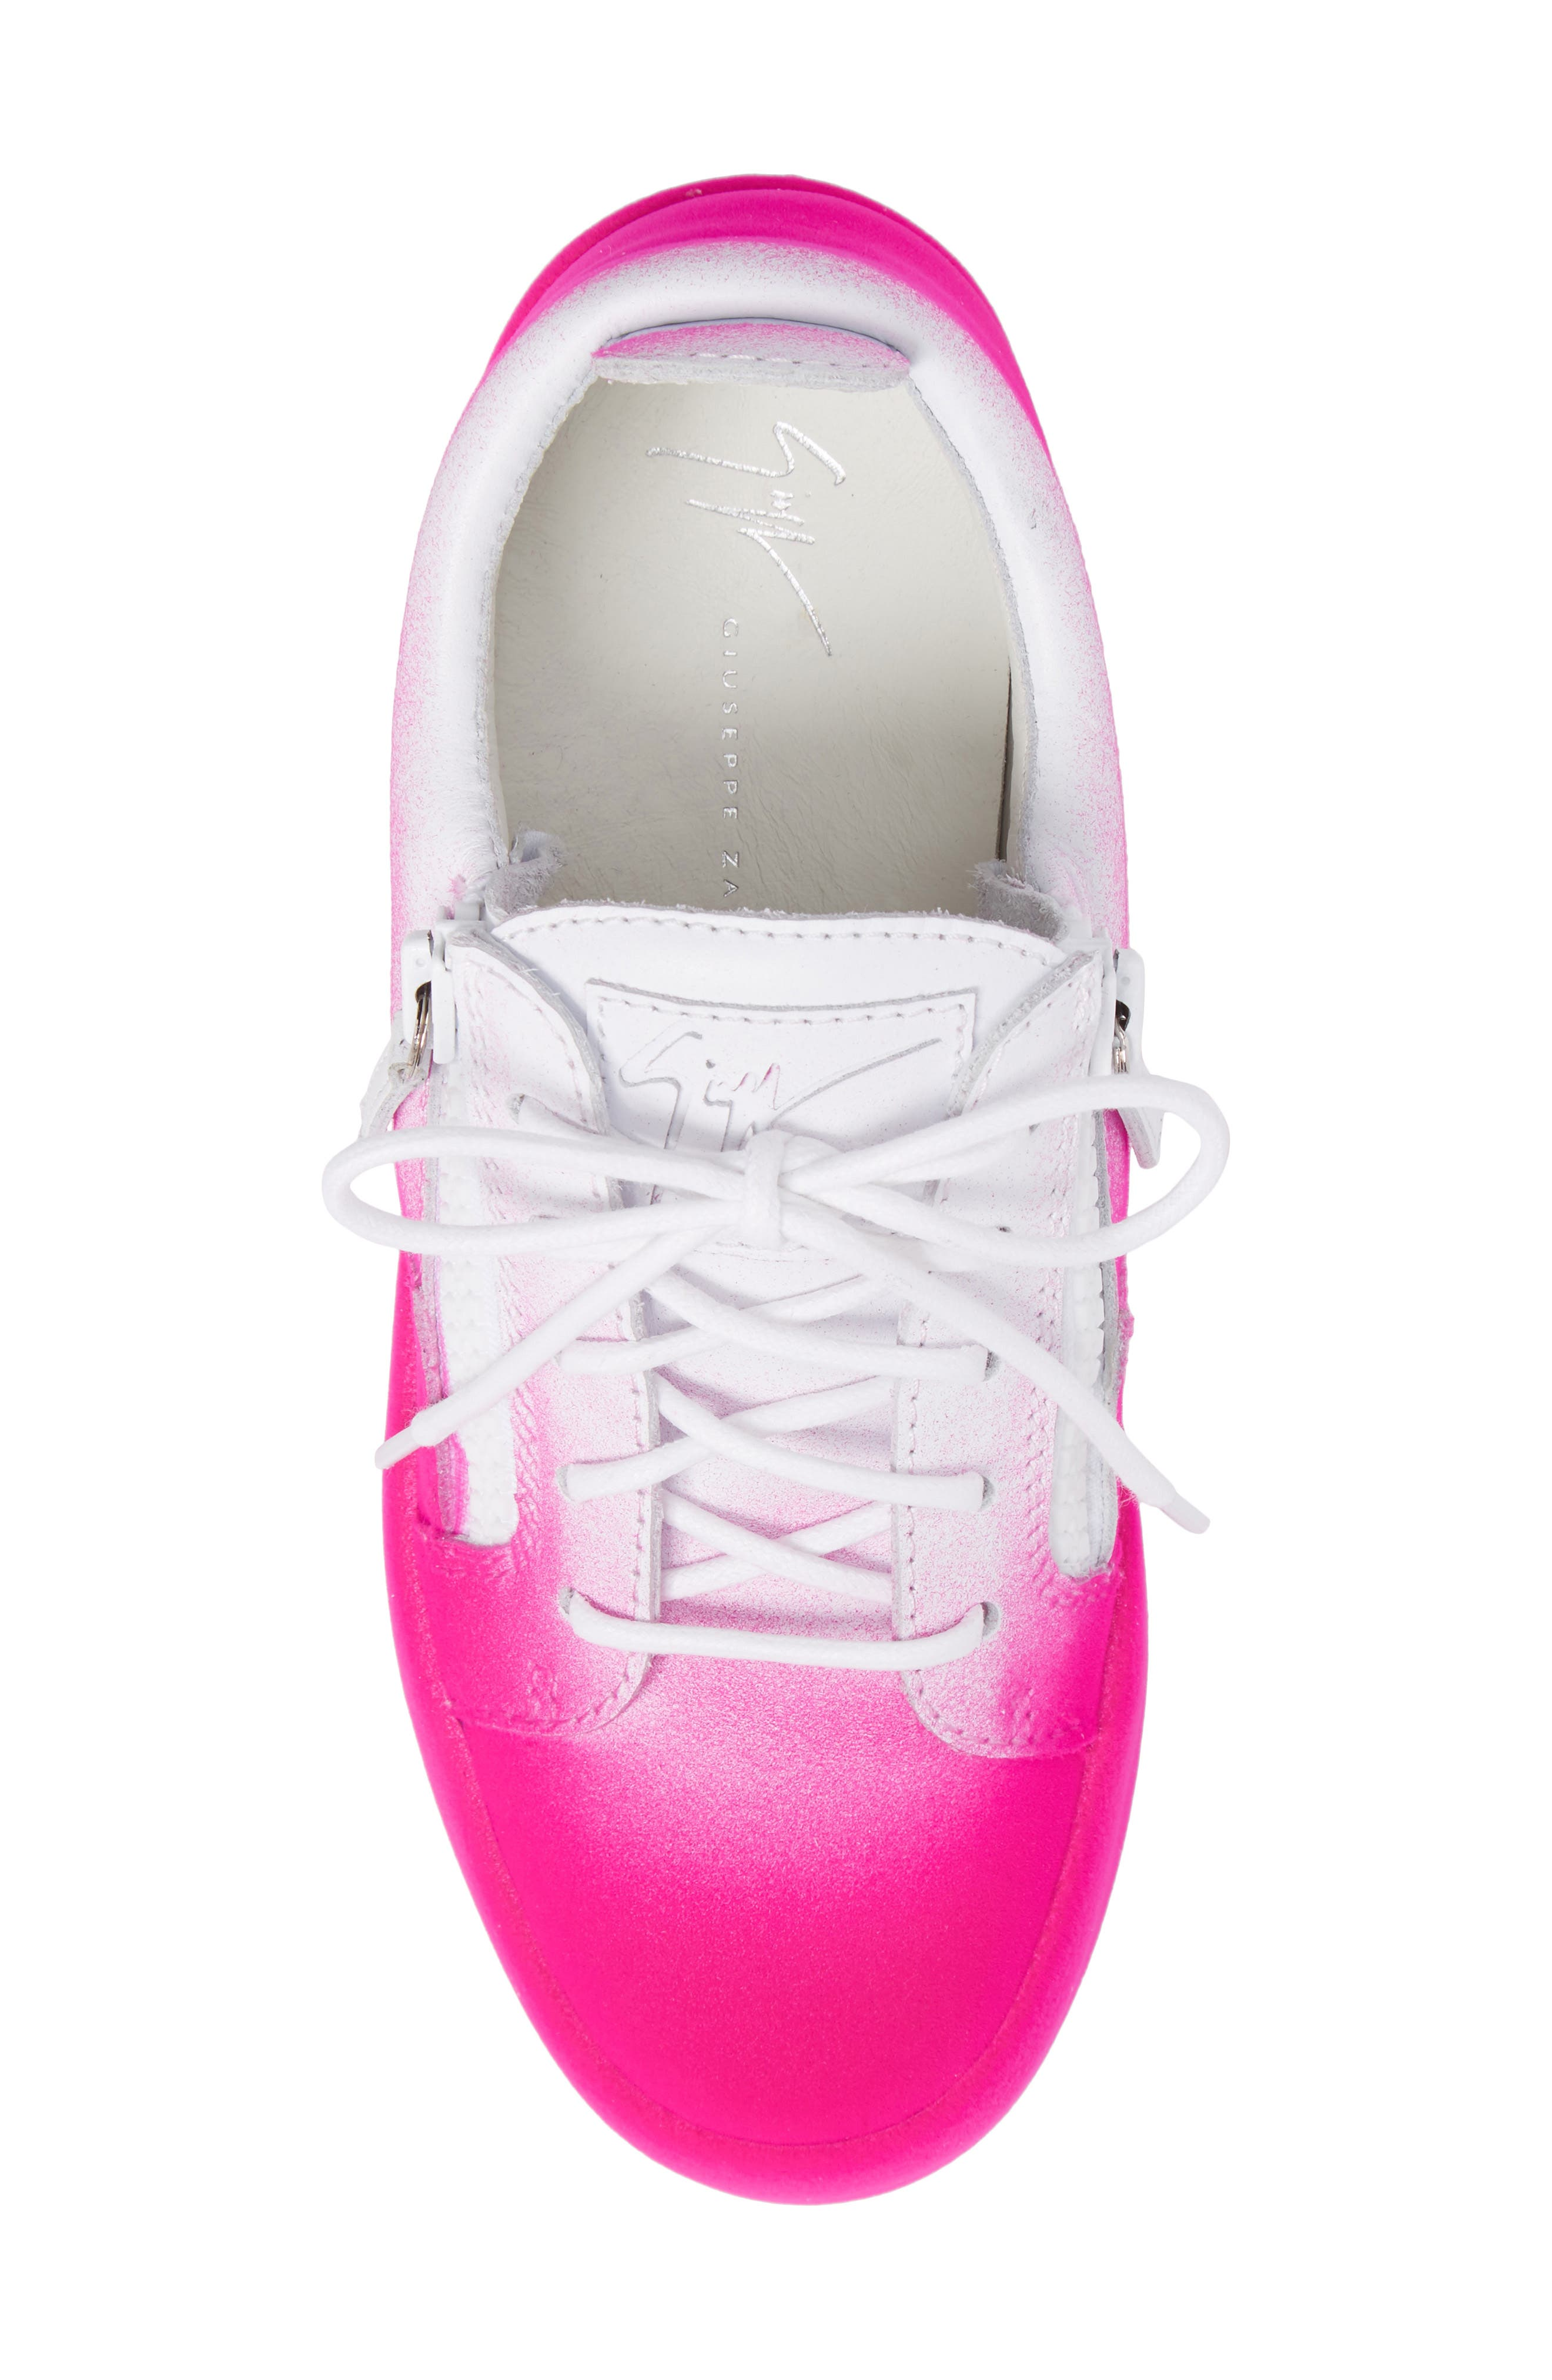 May London Low Top Sneaker,                             Alternate thumbnail 5, color,                             White/ Pink